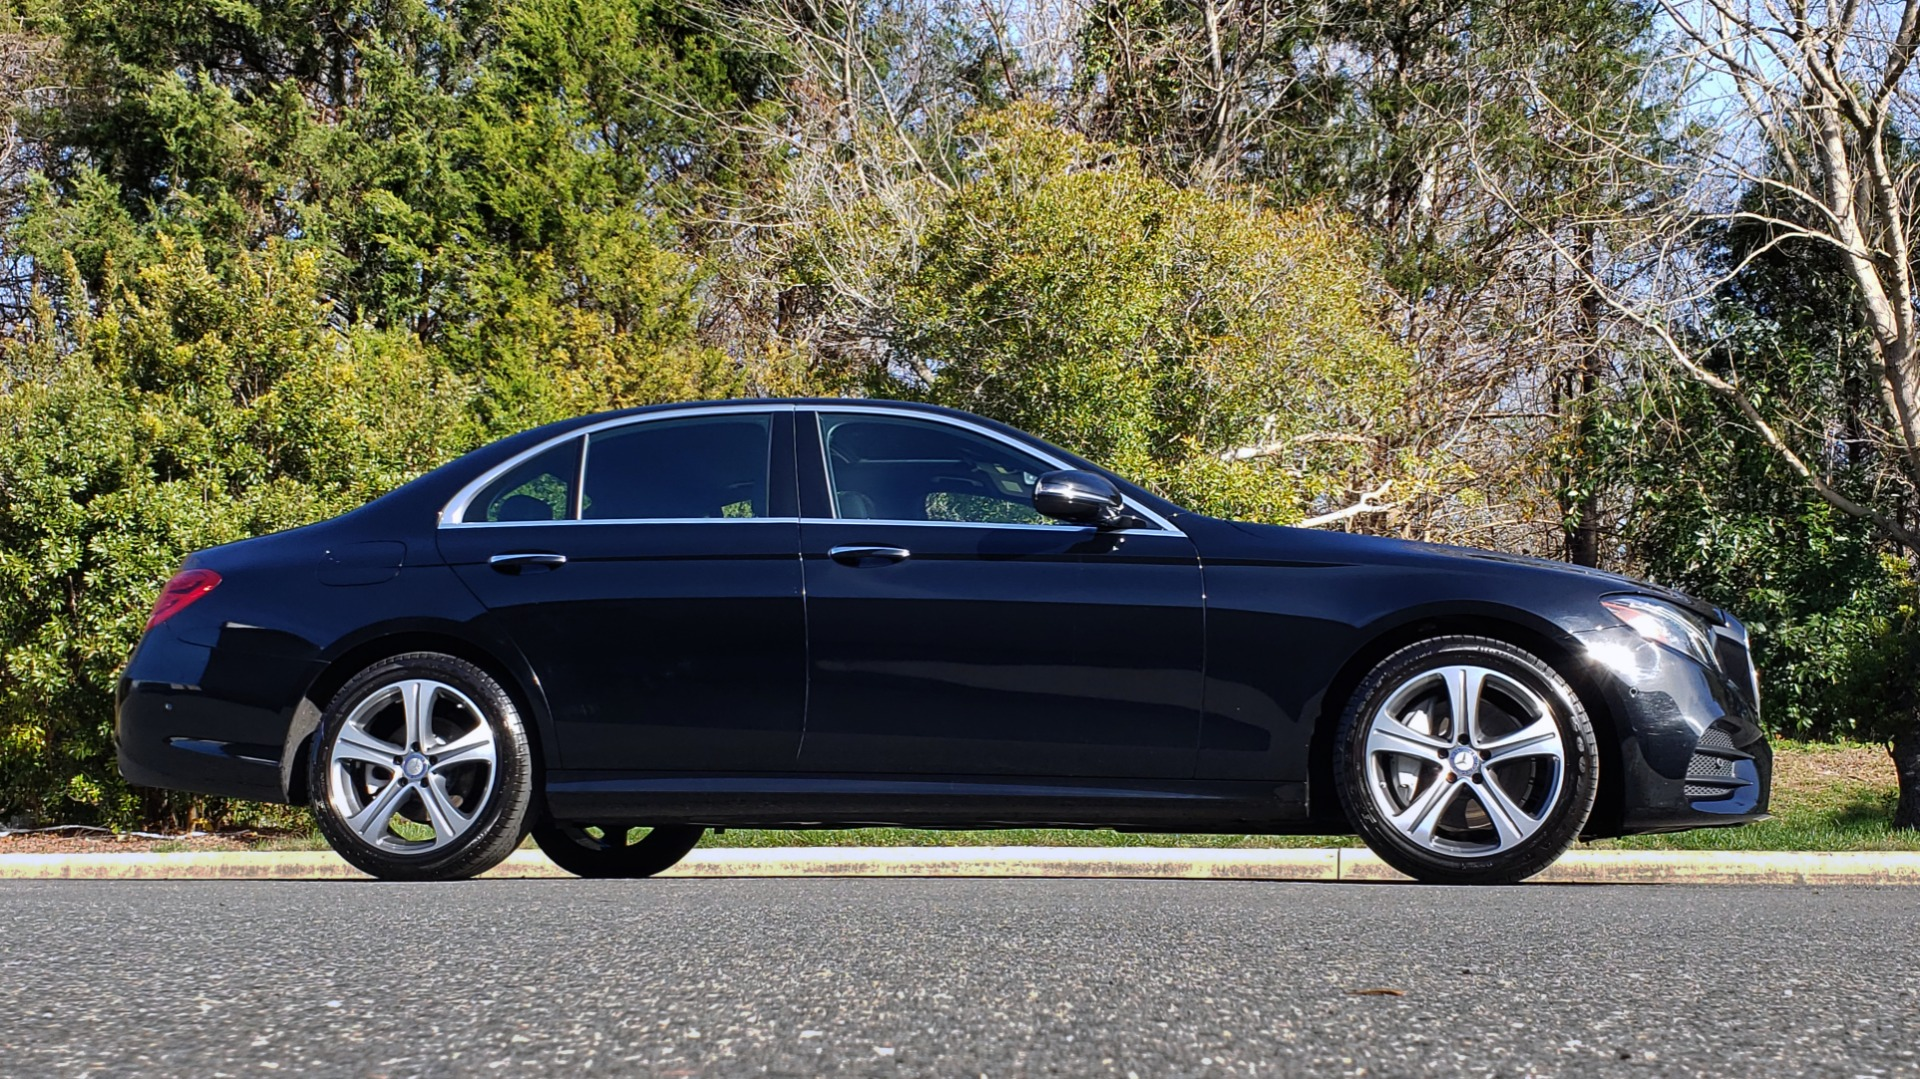 Used 2017 Mercedes-Benz E-CLASS E 300 PREMIUM / NAV / SUNROOF / BURMESTER / HTD STS / REARVIEW for sale $29,995 at Formula Imports in Charlotte NC 28227 5